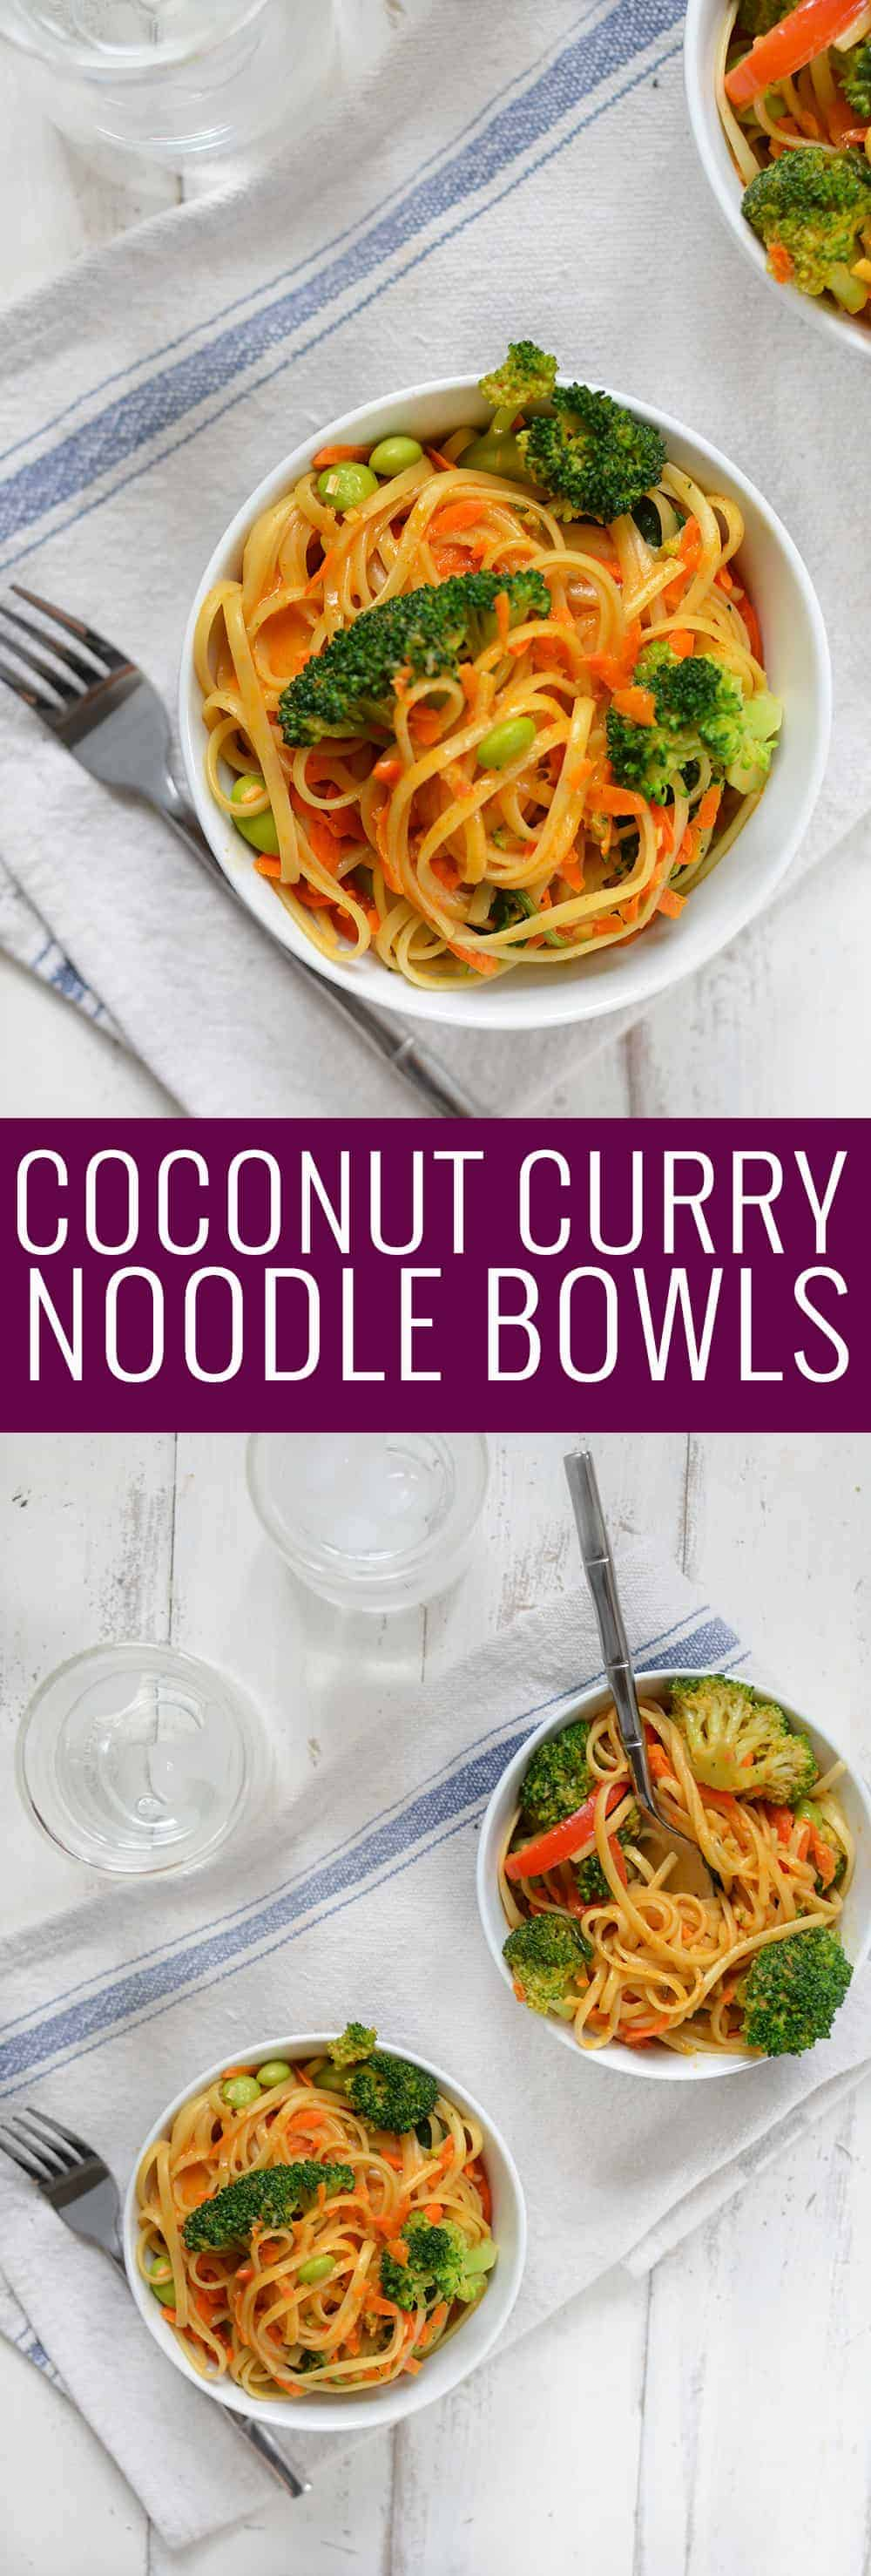 Vegan Coconut Curry Noodle Bowls! 2 servings of vegetables in every bowl! Linguini & Vegetables simmered in a coconut red curry sauce. Ready in less than 30 minutes! | www.delishknowledge.com